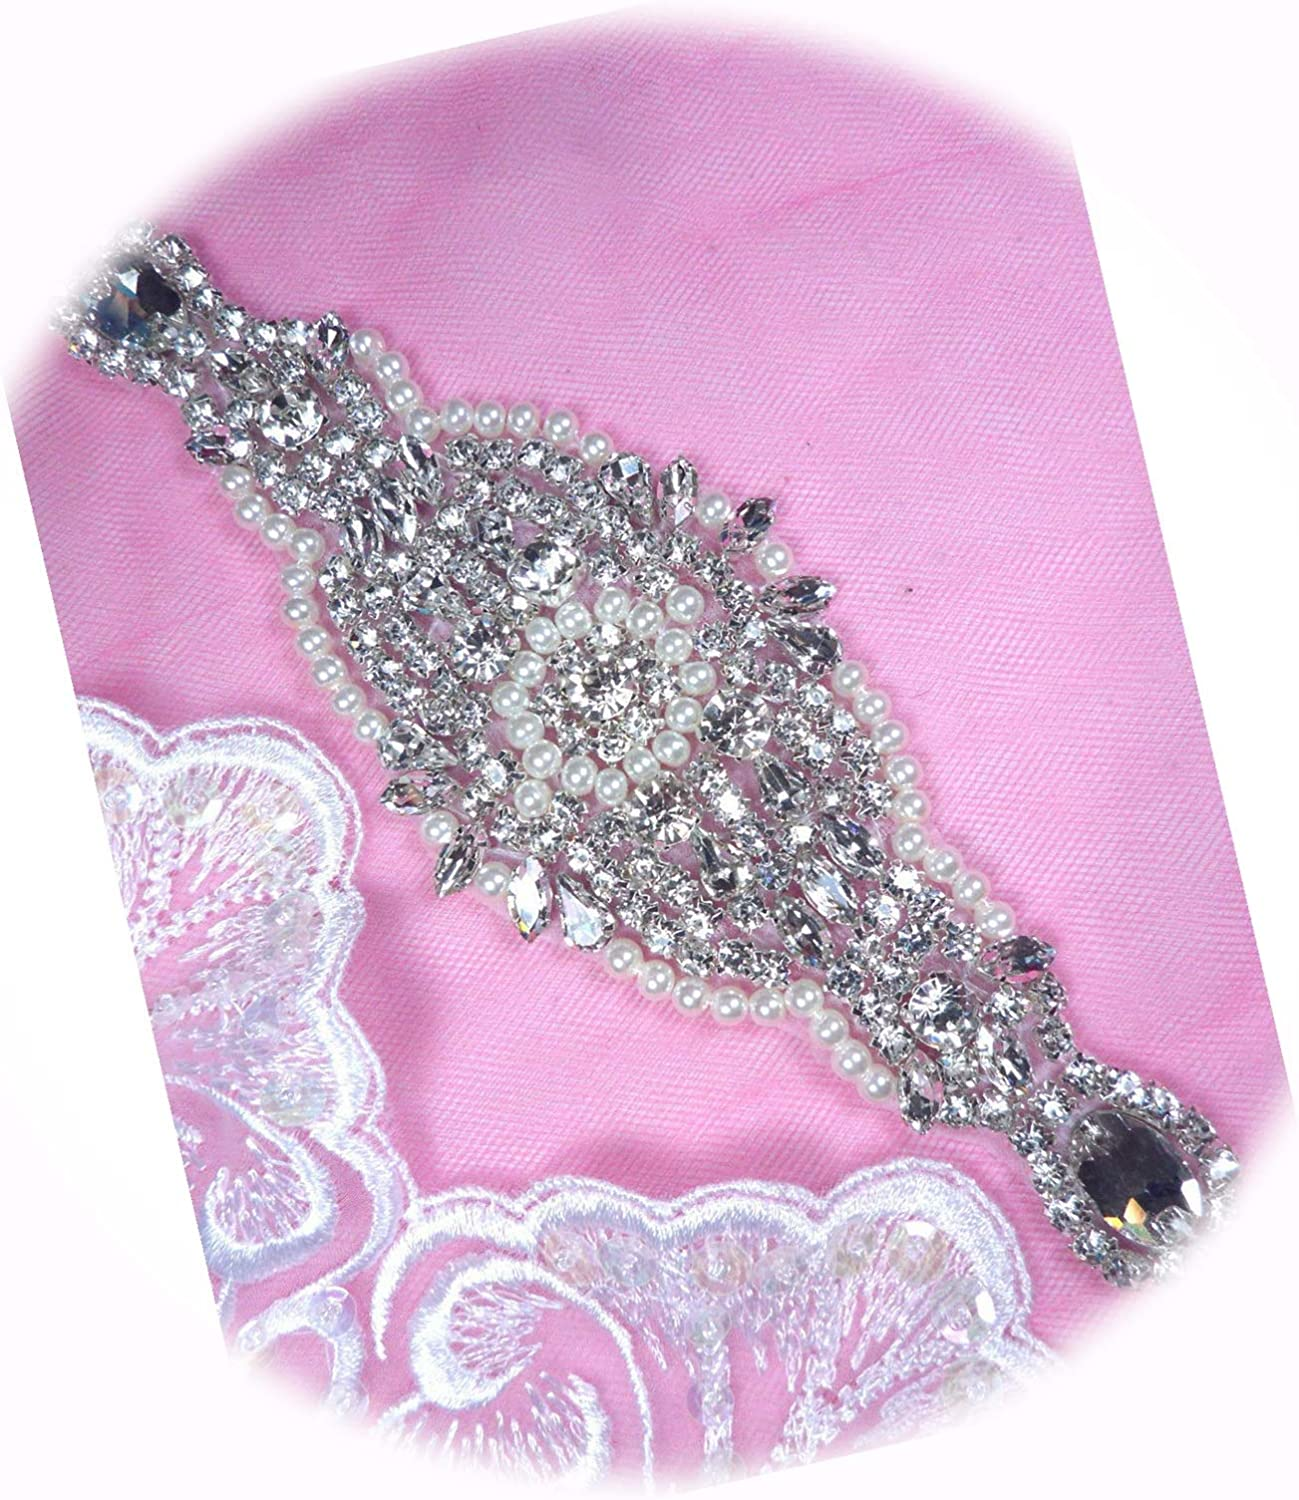 Pearl Gifts Applique Crystal Clear Rhinestone Patch for Per Your 7.75